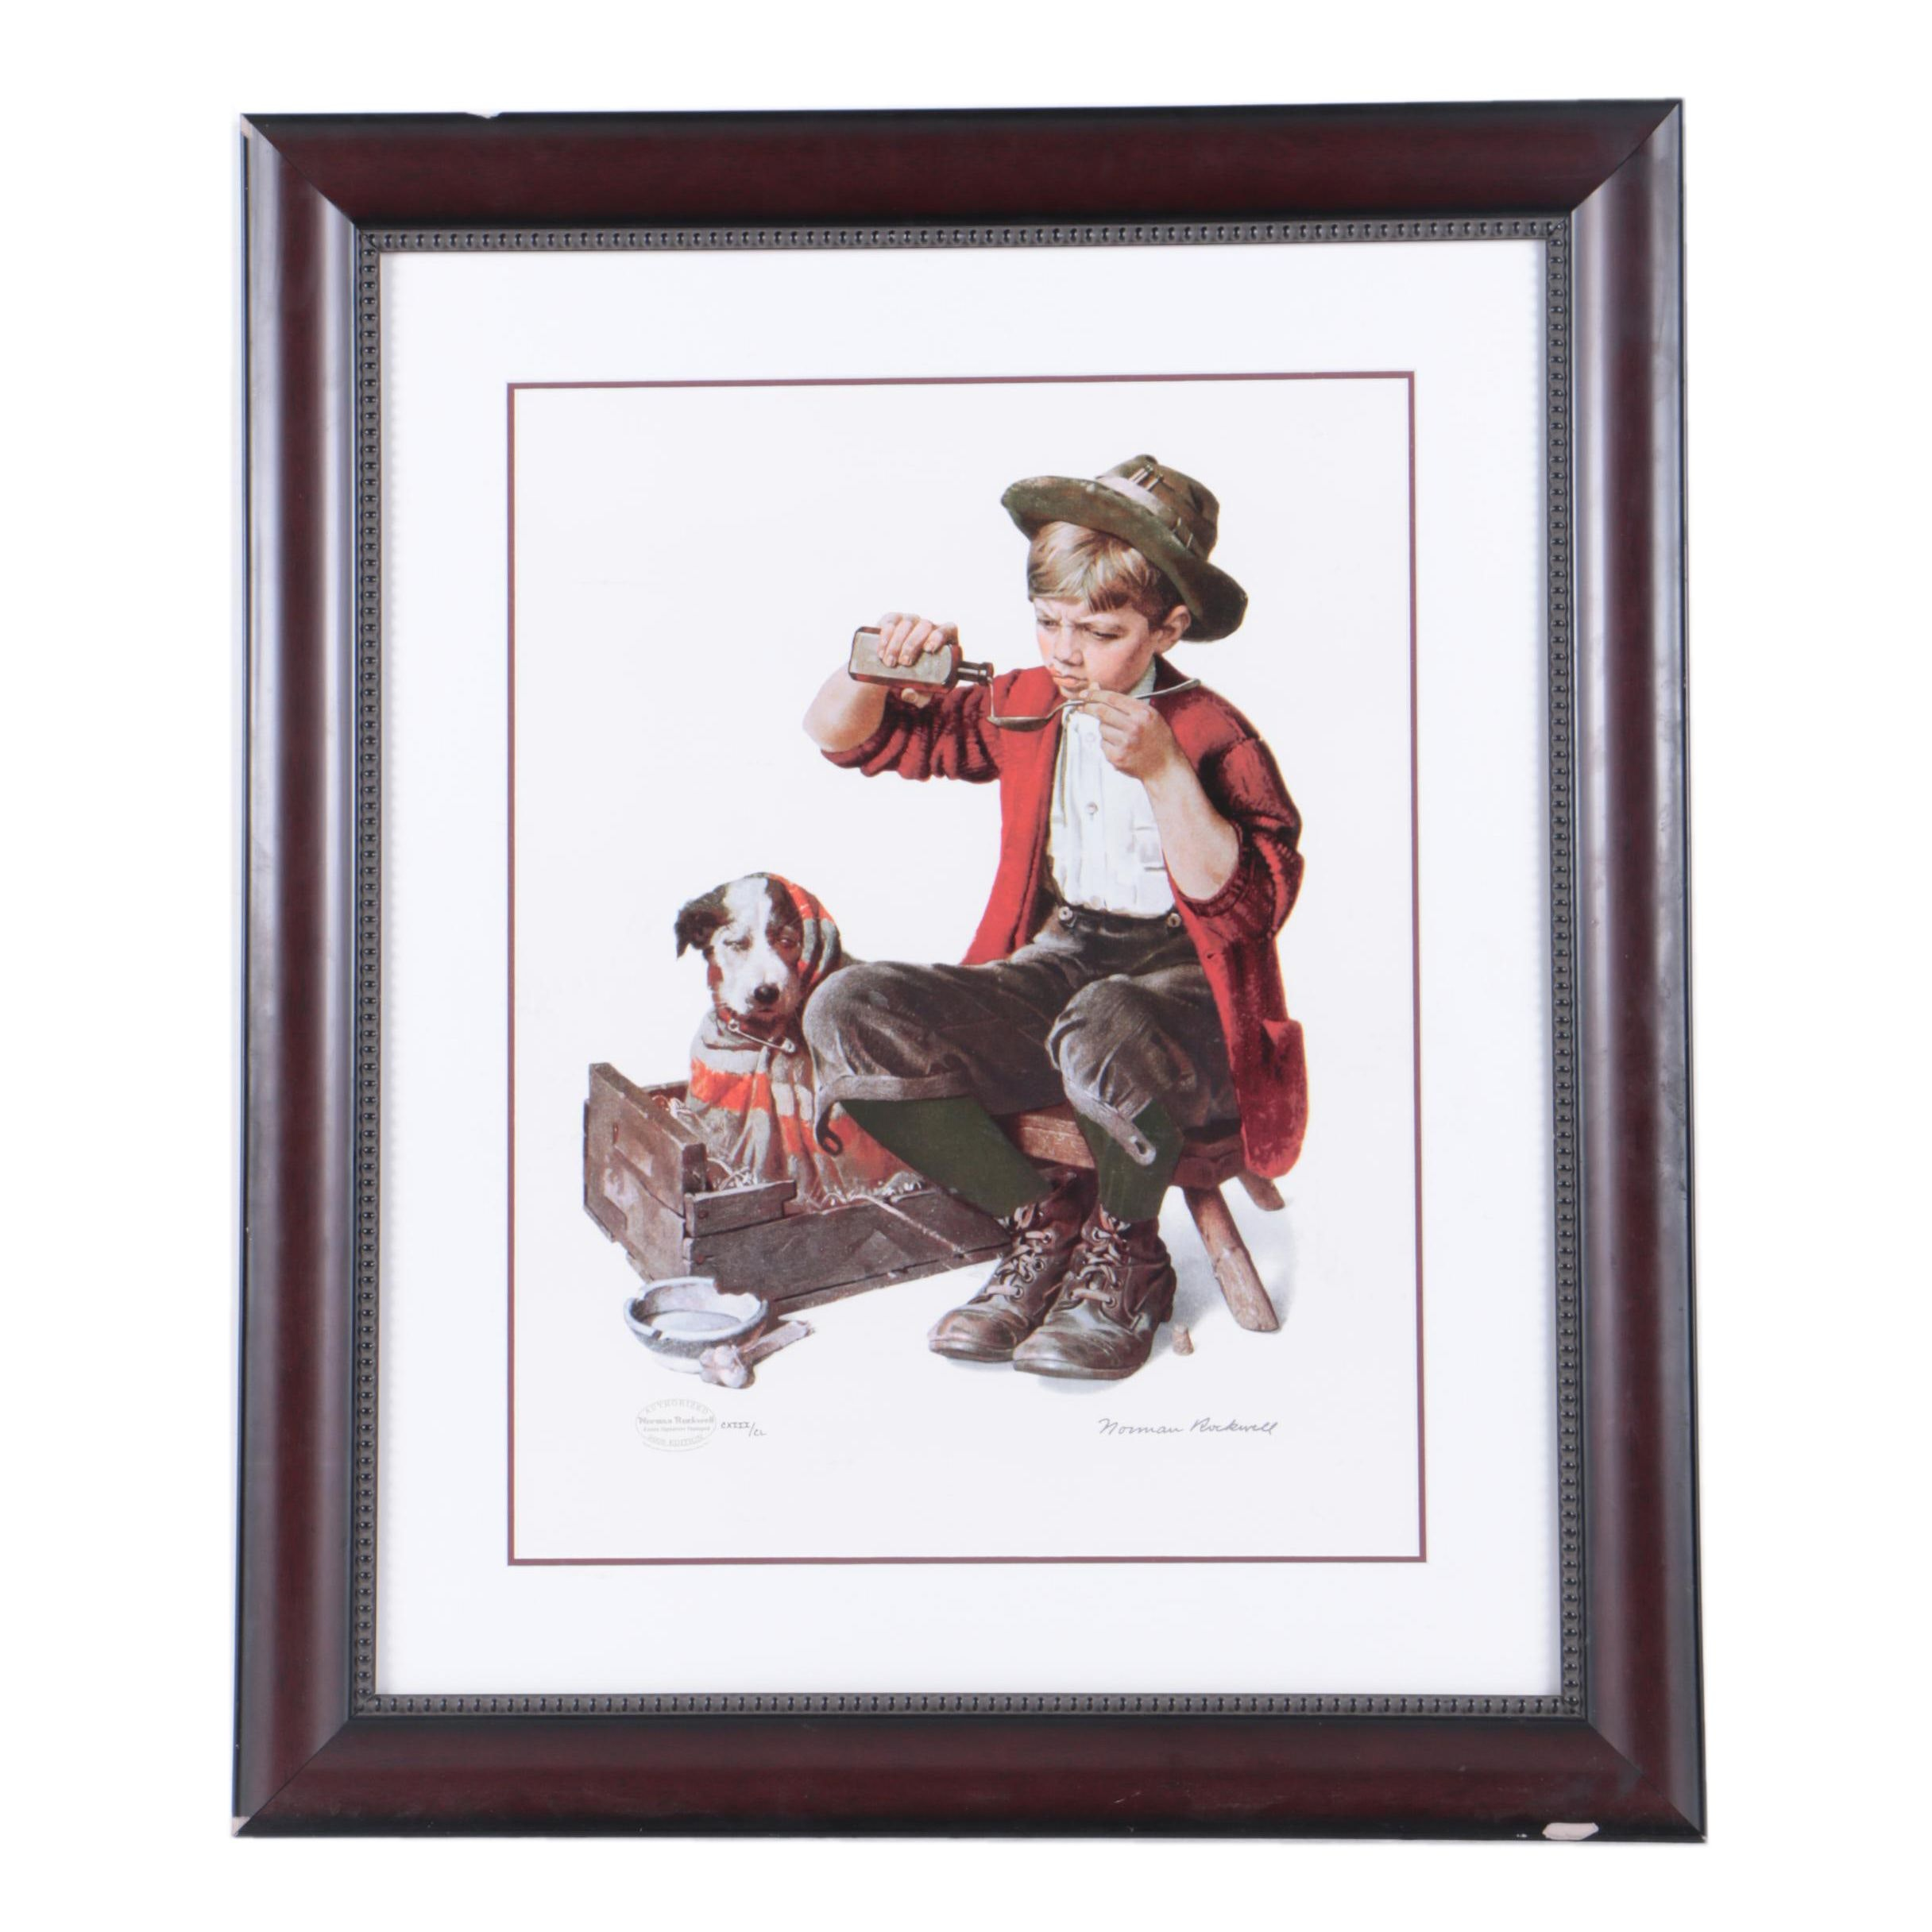 "Reproduction Print on Paper After Norman Rockwell ""Bedside Manner"""